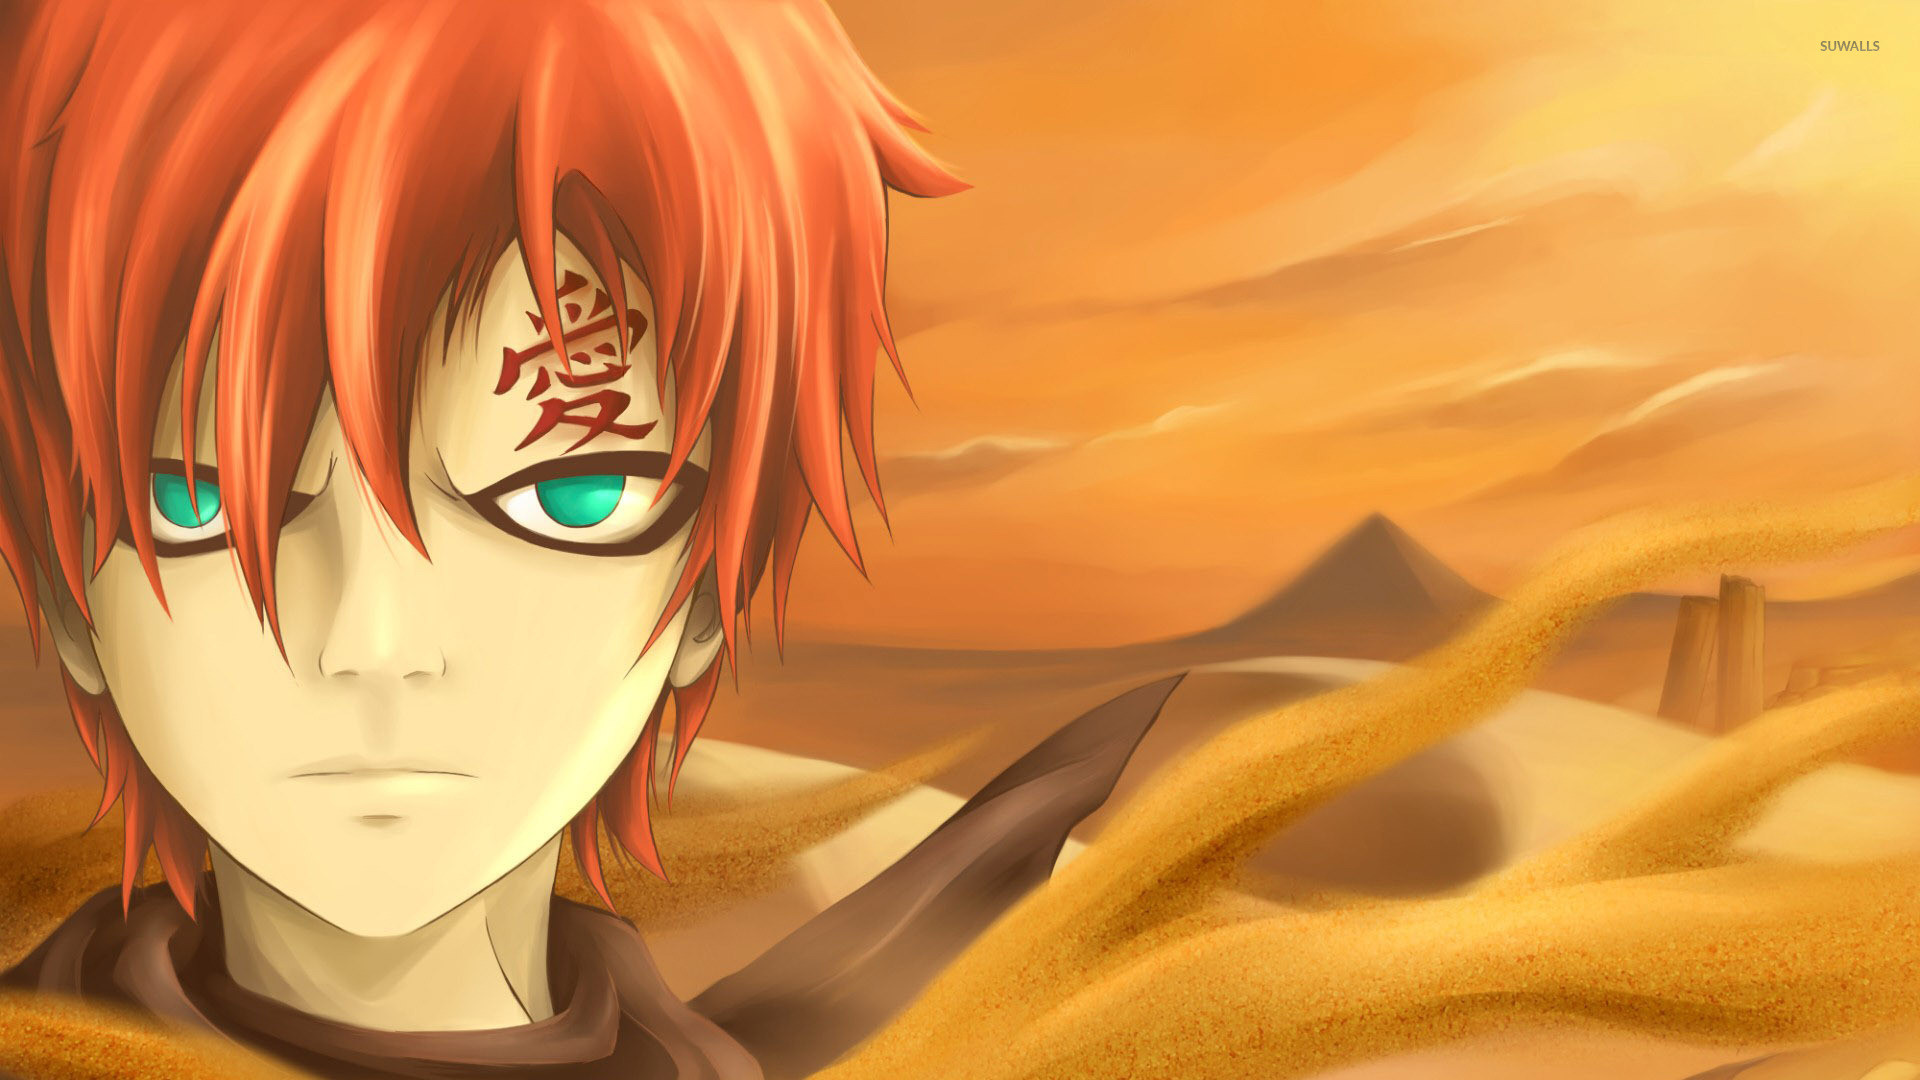 1920x1080 Gaara - Naruto [5] wallpaper